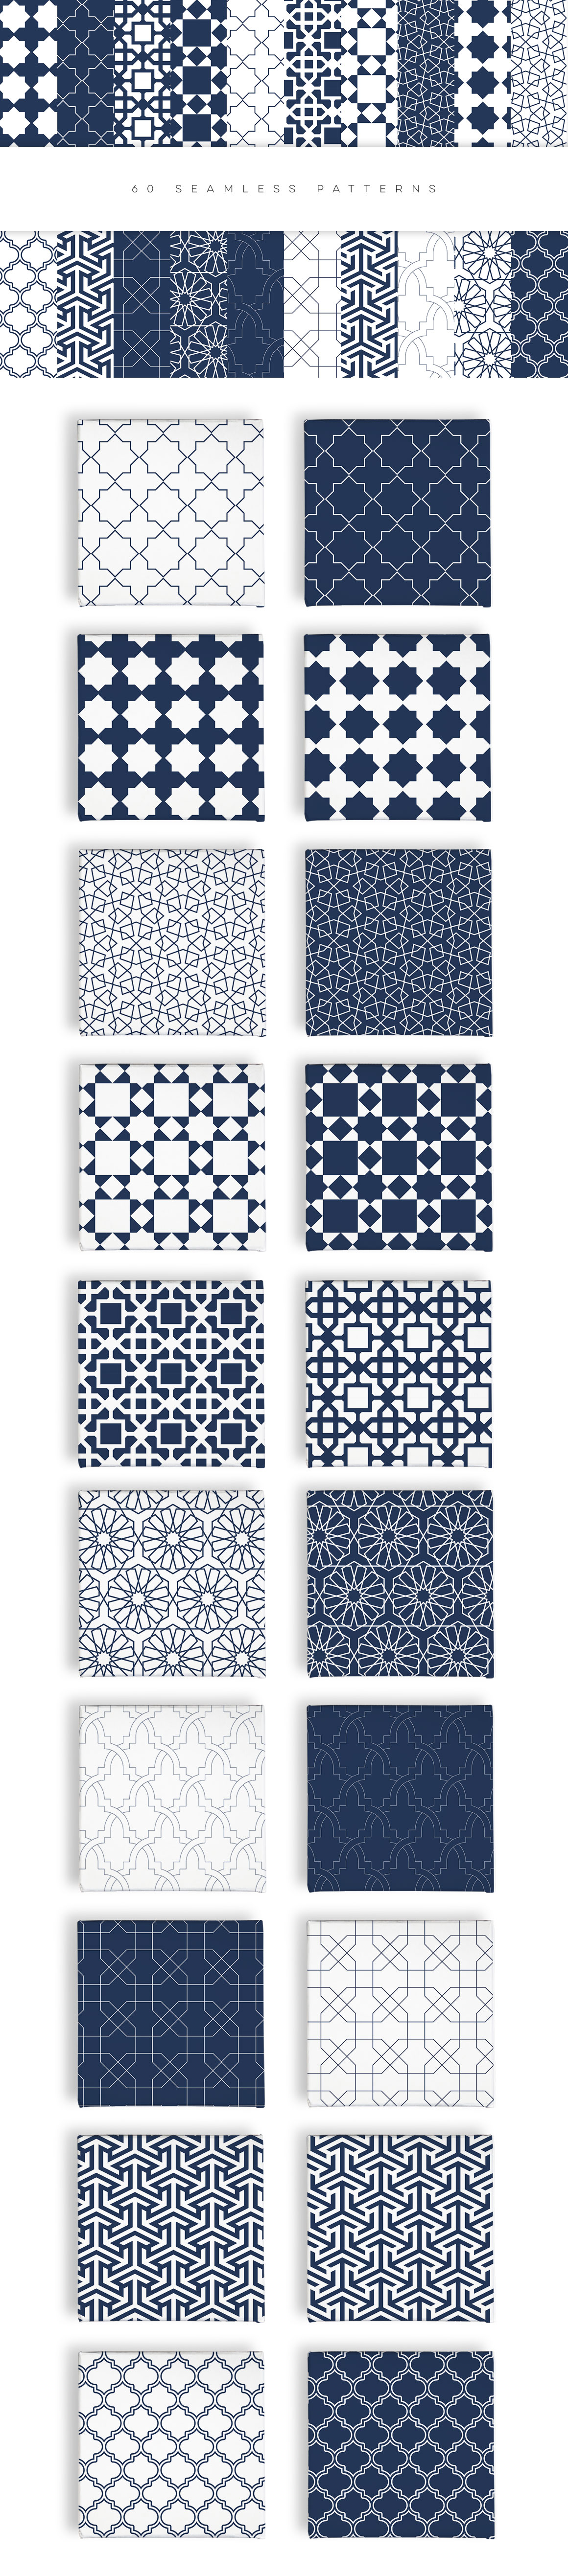 Geometric Patterns Islamic Edition